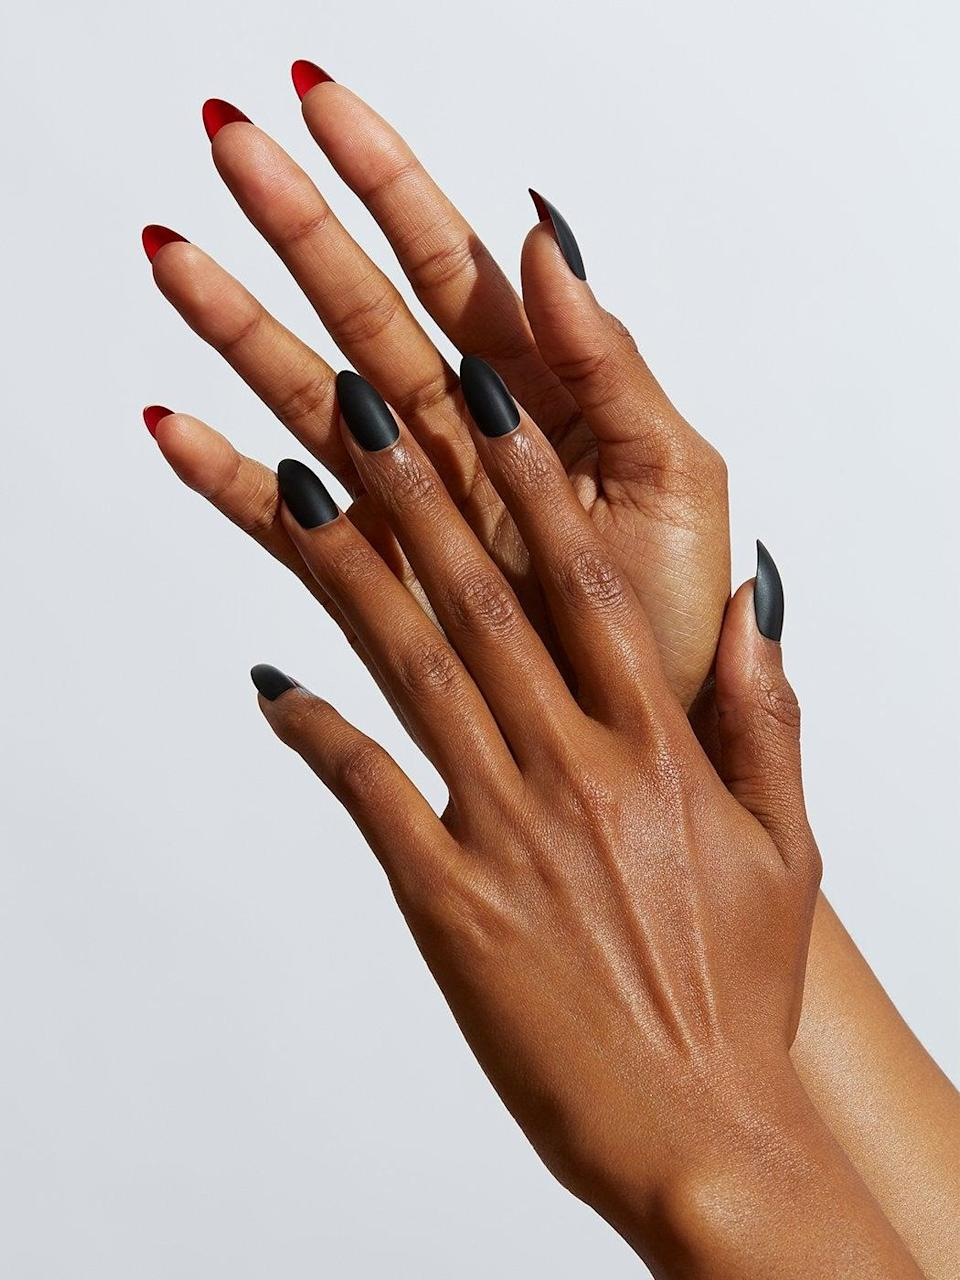 "<h3>Static Nails in Caviar</h3><br>More than 450 reviewers claim that these reusable press ons by Static Nails are the gold standard in fake nails. This particular design — like classic Louboutins, matte black stiletto tips with red underneath — is an undeniably chic take on a Halloween mani. <br><br><strong>Static Nails</strong> CAVIAR, $, available at <a href=""https://go.skimresources.com/?id=30283X879131&url=https%3A%2F%2Fstaticnails.com%2Fcollections%2Freusable-manicure%2Fproducts%2Fcaviar-pre-sale"" rel=""nofollow noopener"" target=""_blank"" data-ylk=""slk:Static Nails"" class=""link rapid-noclick-resp"">Static Nails</a>"